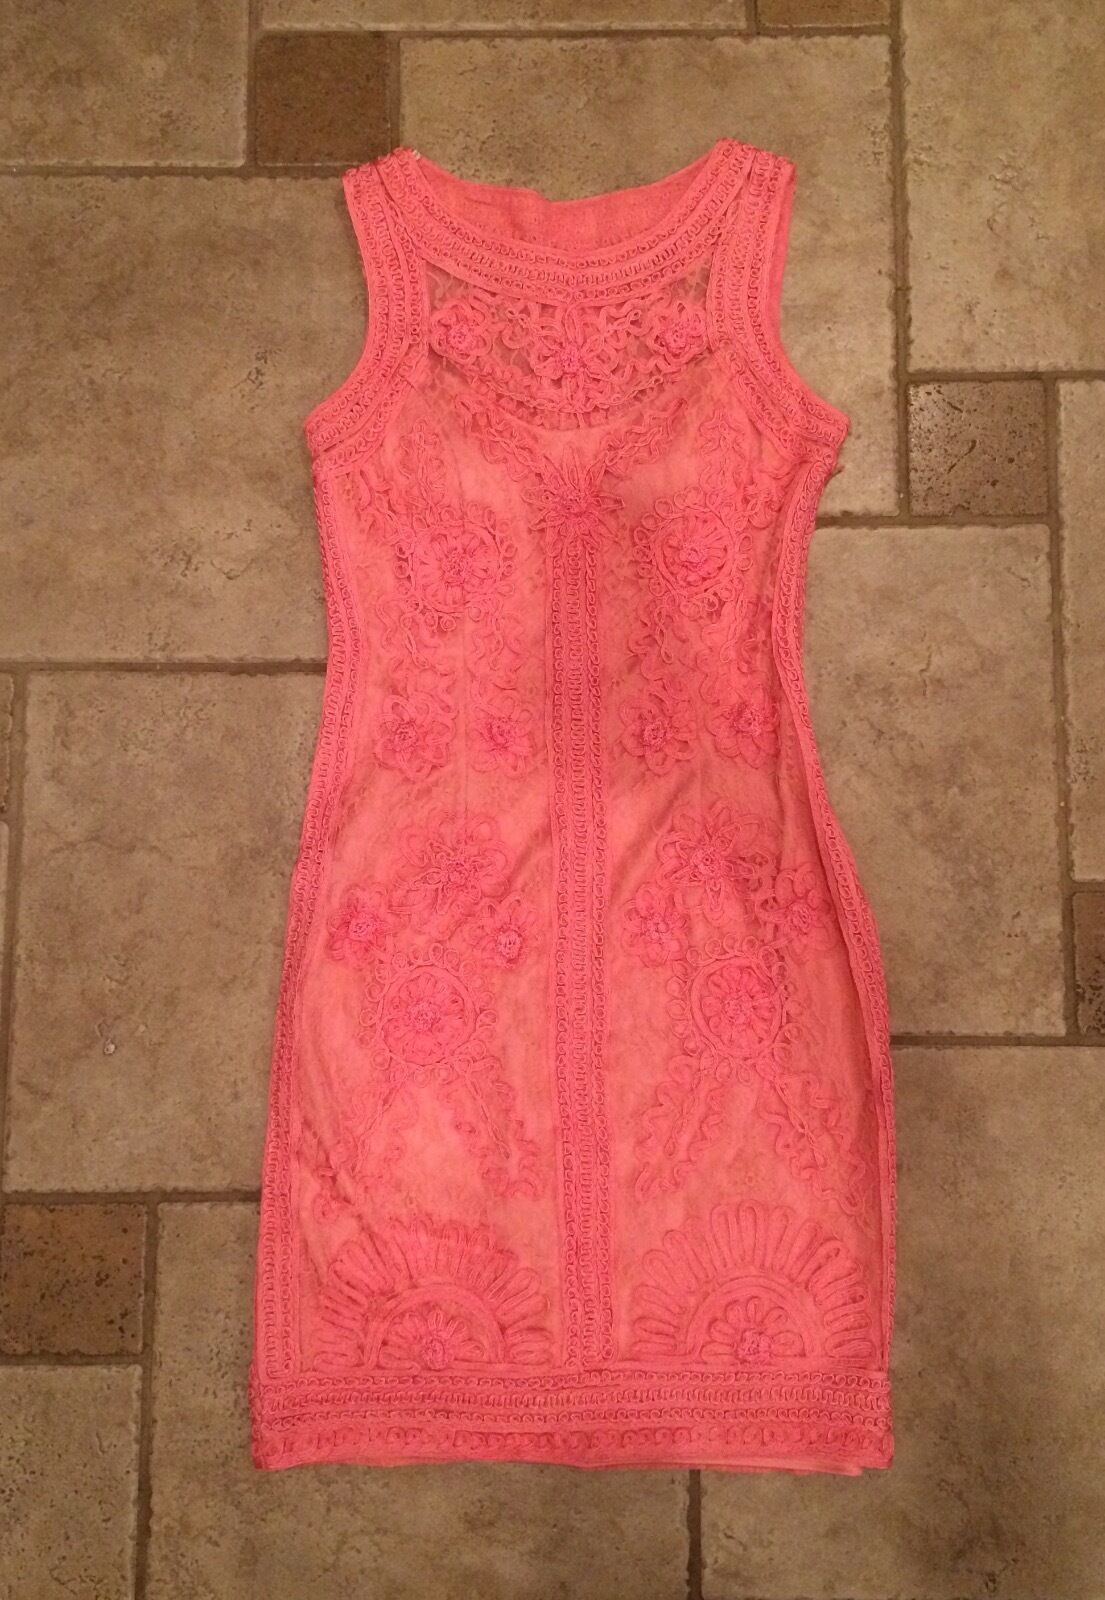 SUE WONG NOCTURNE CORAL EMBROIDErot LACE DRESS, SZ. 6